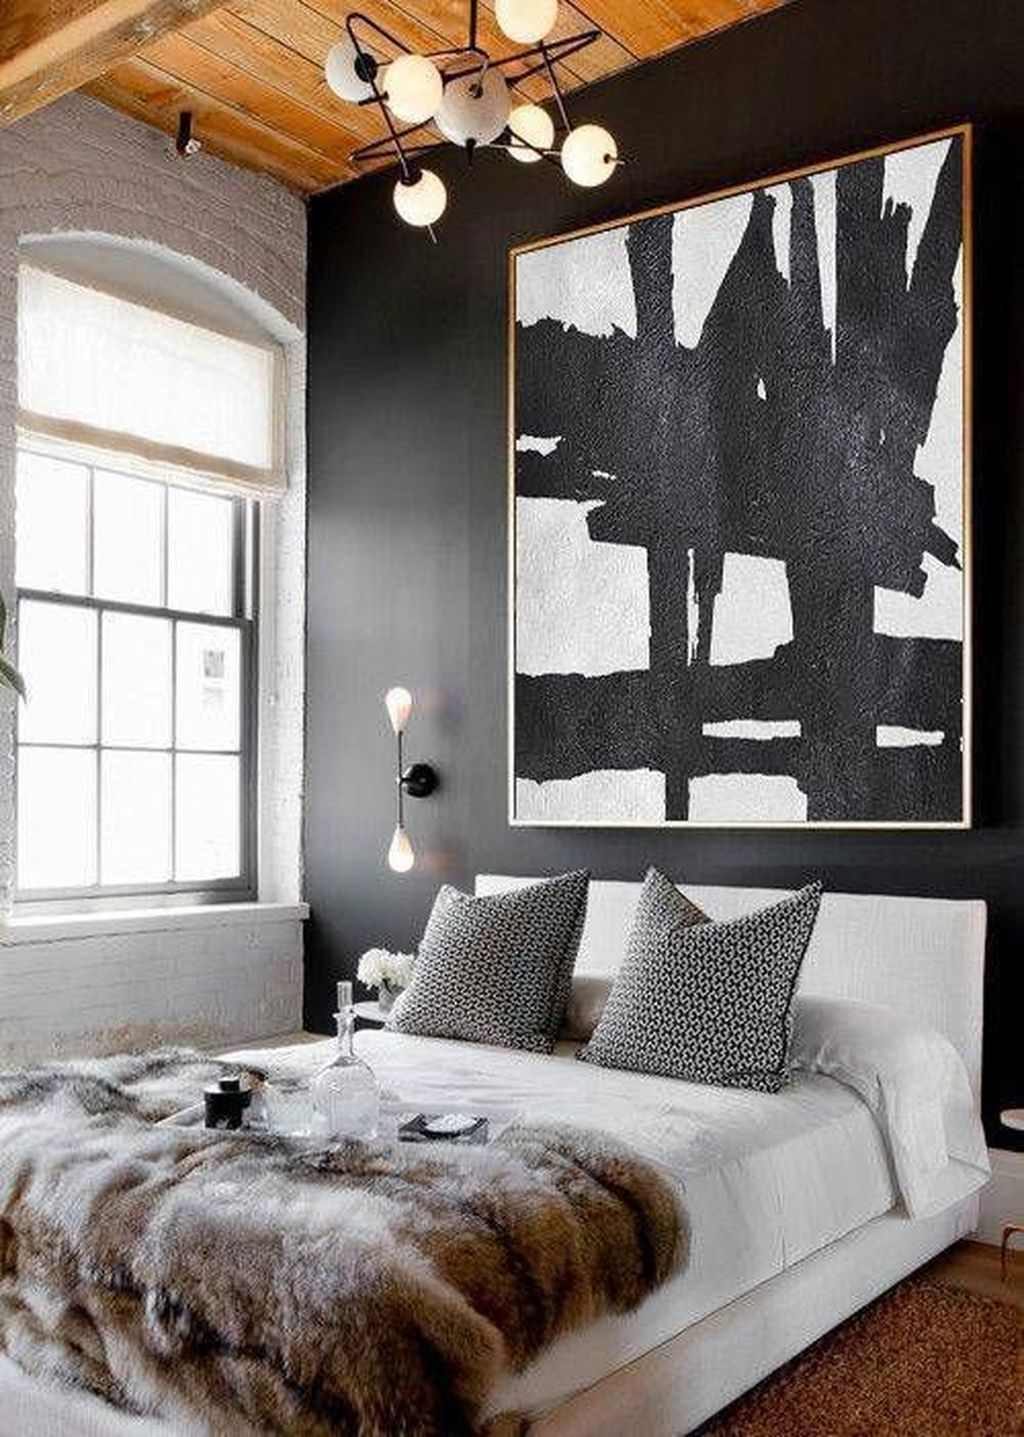 Pin by homishome on Interior Design Bedroom wall designs